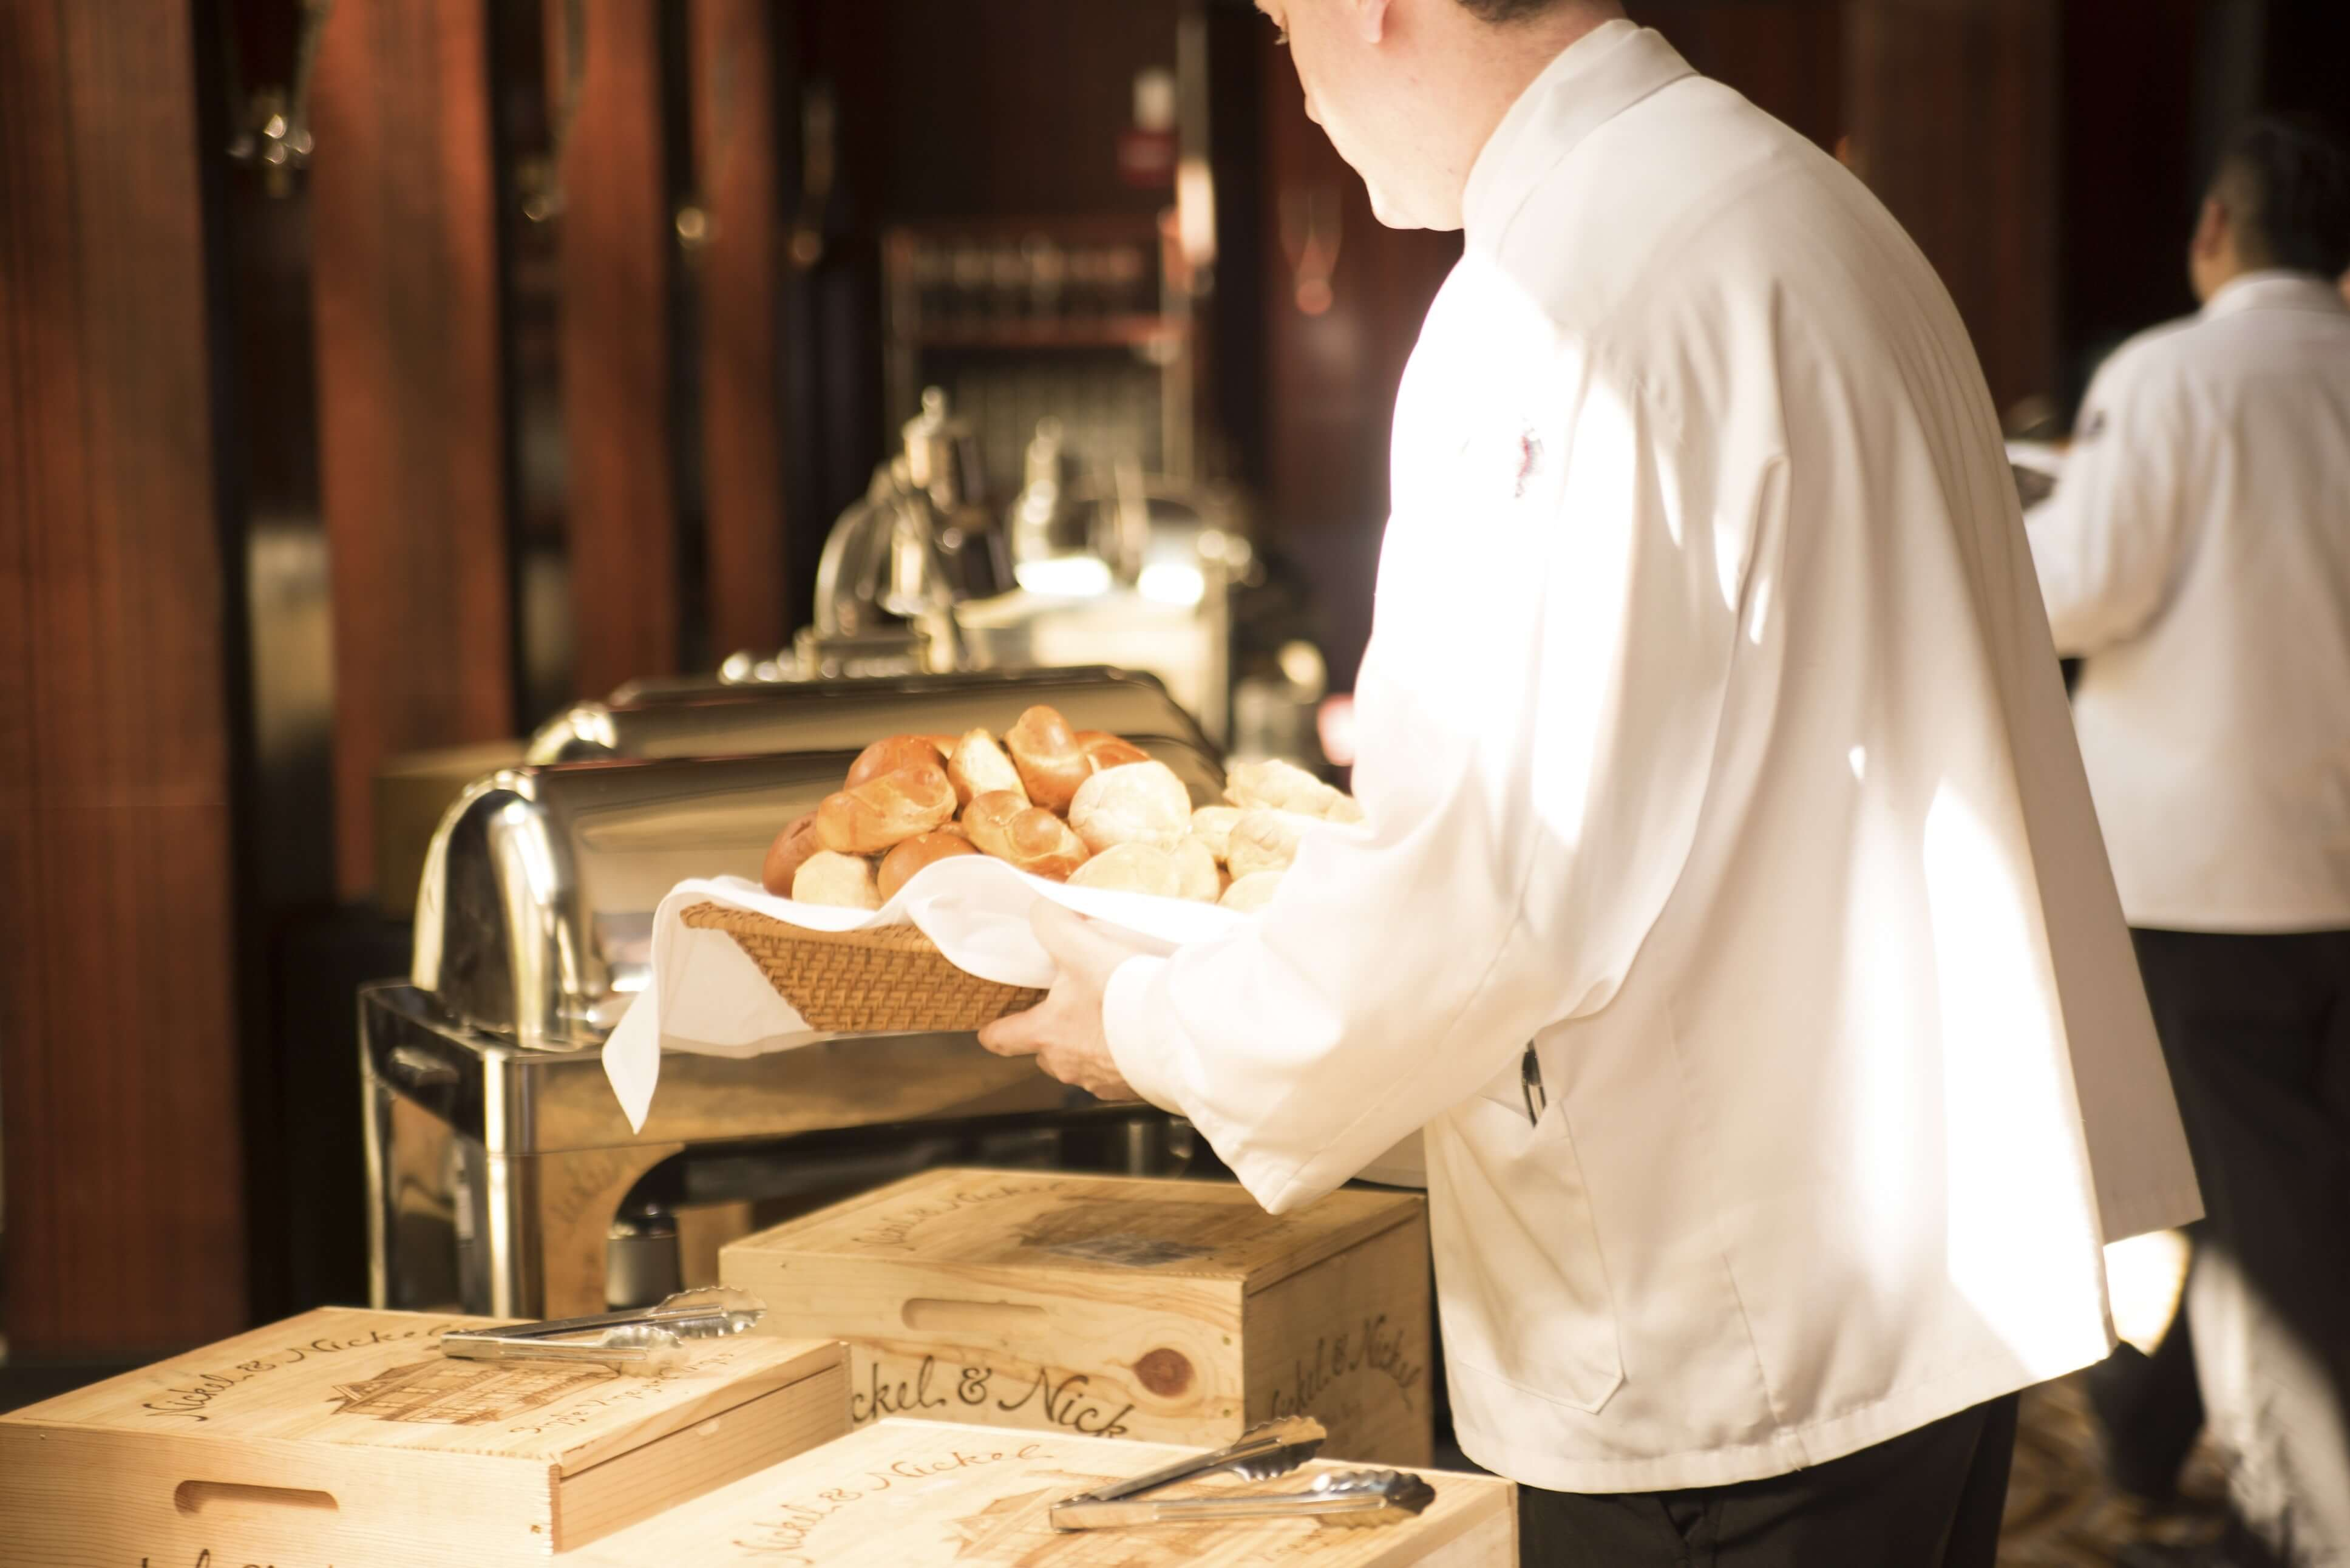 Uber for catering app development, Uber for Catering App Development: Important Checklist for Catering Startups Who Want to Develop an On-Demand Catering App